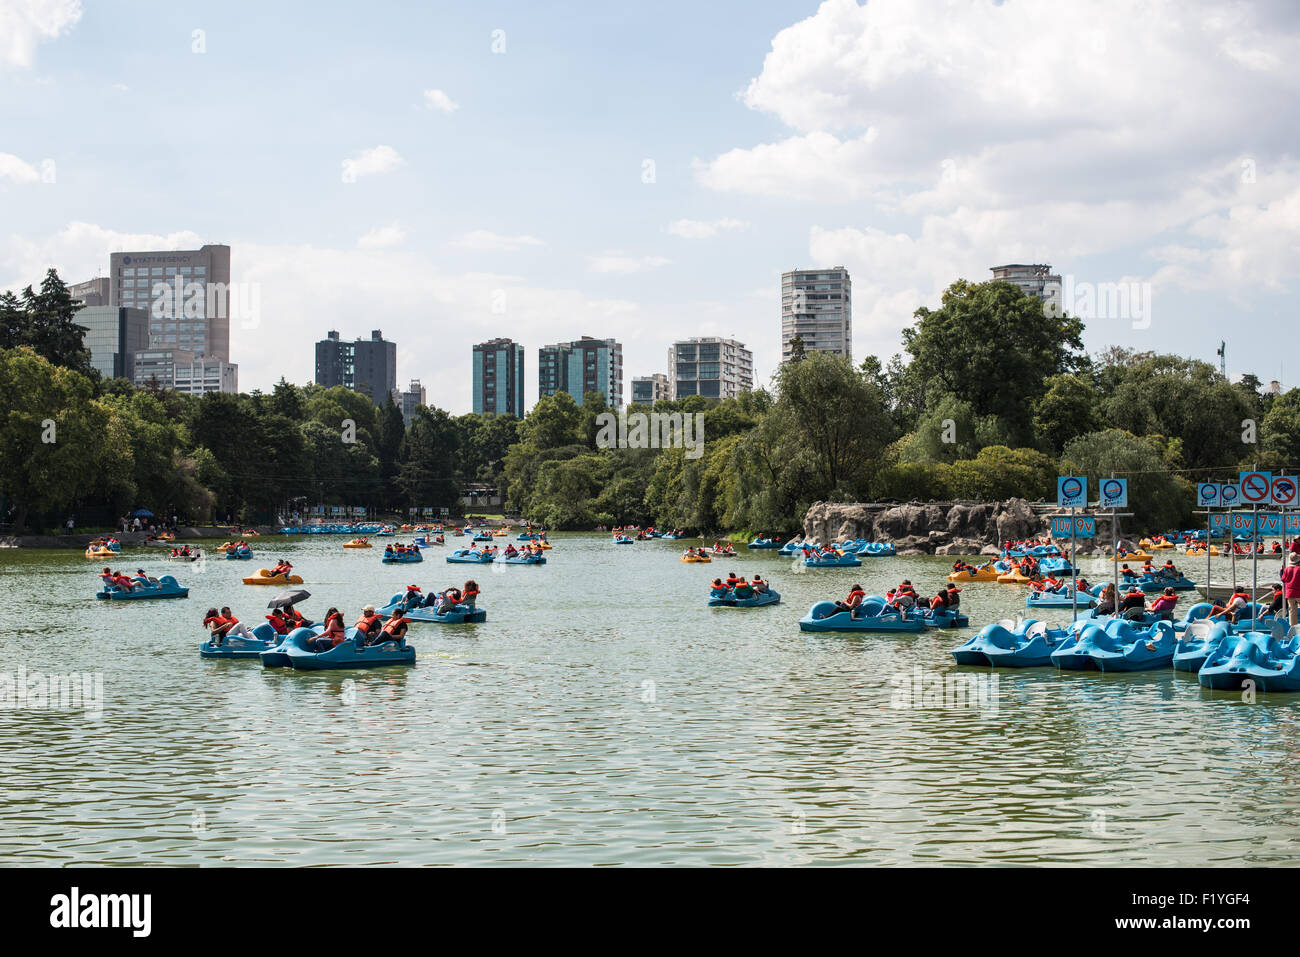 MEXICO CITY, Mexico - Visitors use the padlde boats on the lake in Basque de Chapultepec, a large and popular public Stock Photo